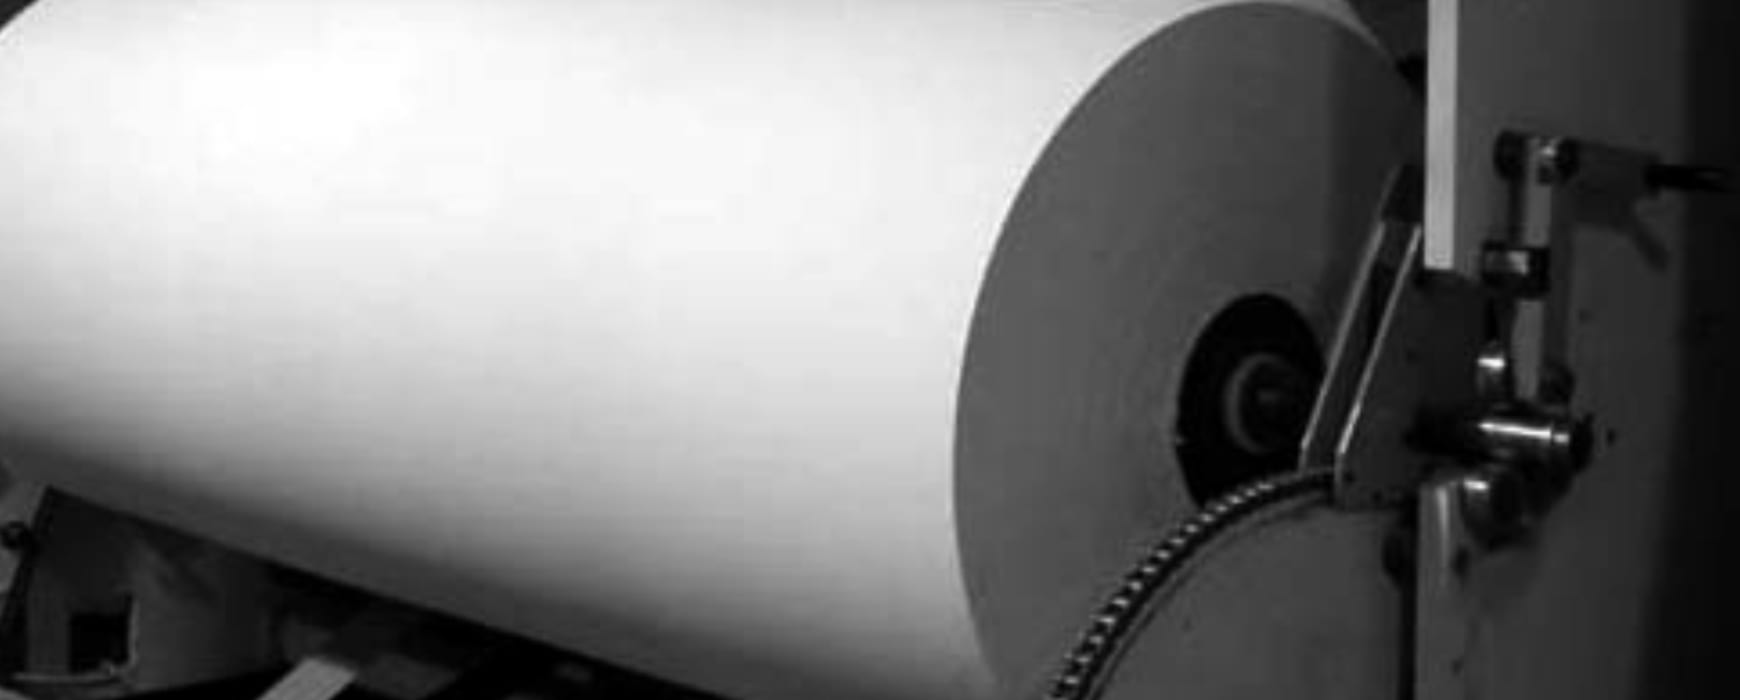 PAPER AND CORRUGATION